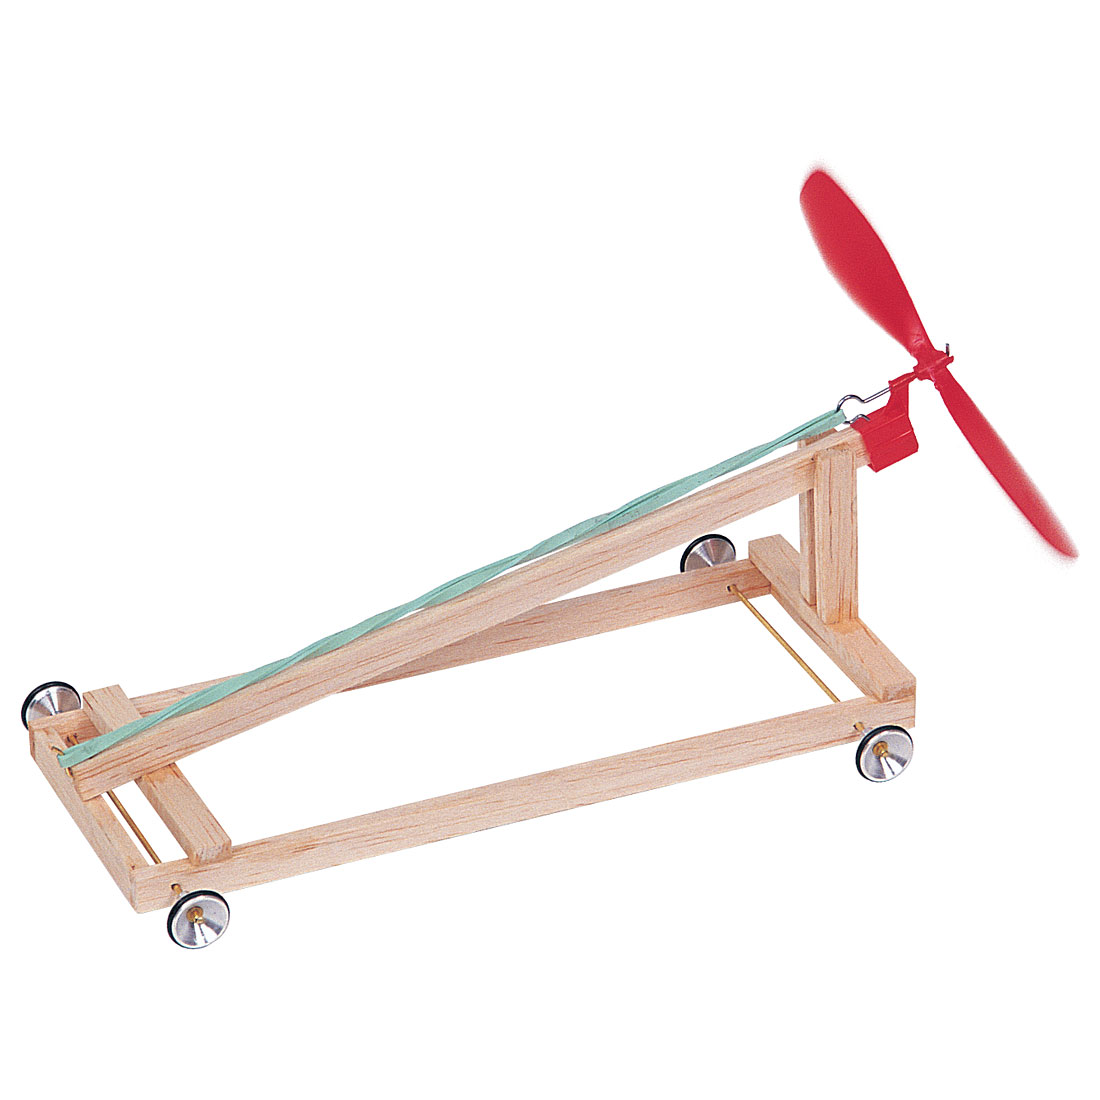 Purchase Zephyr Rubber Band Powered Racer